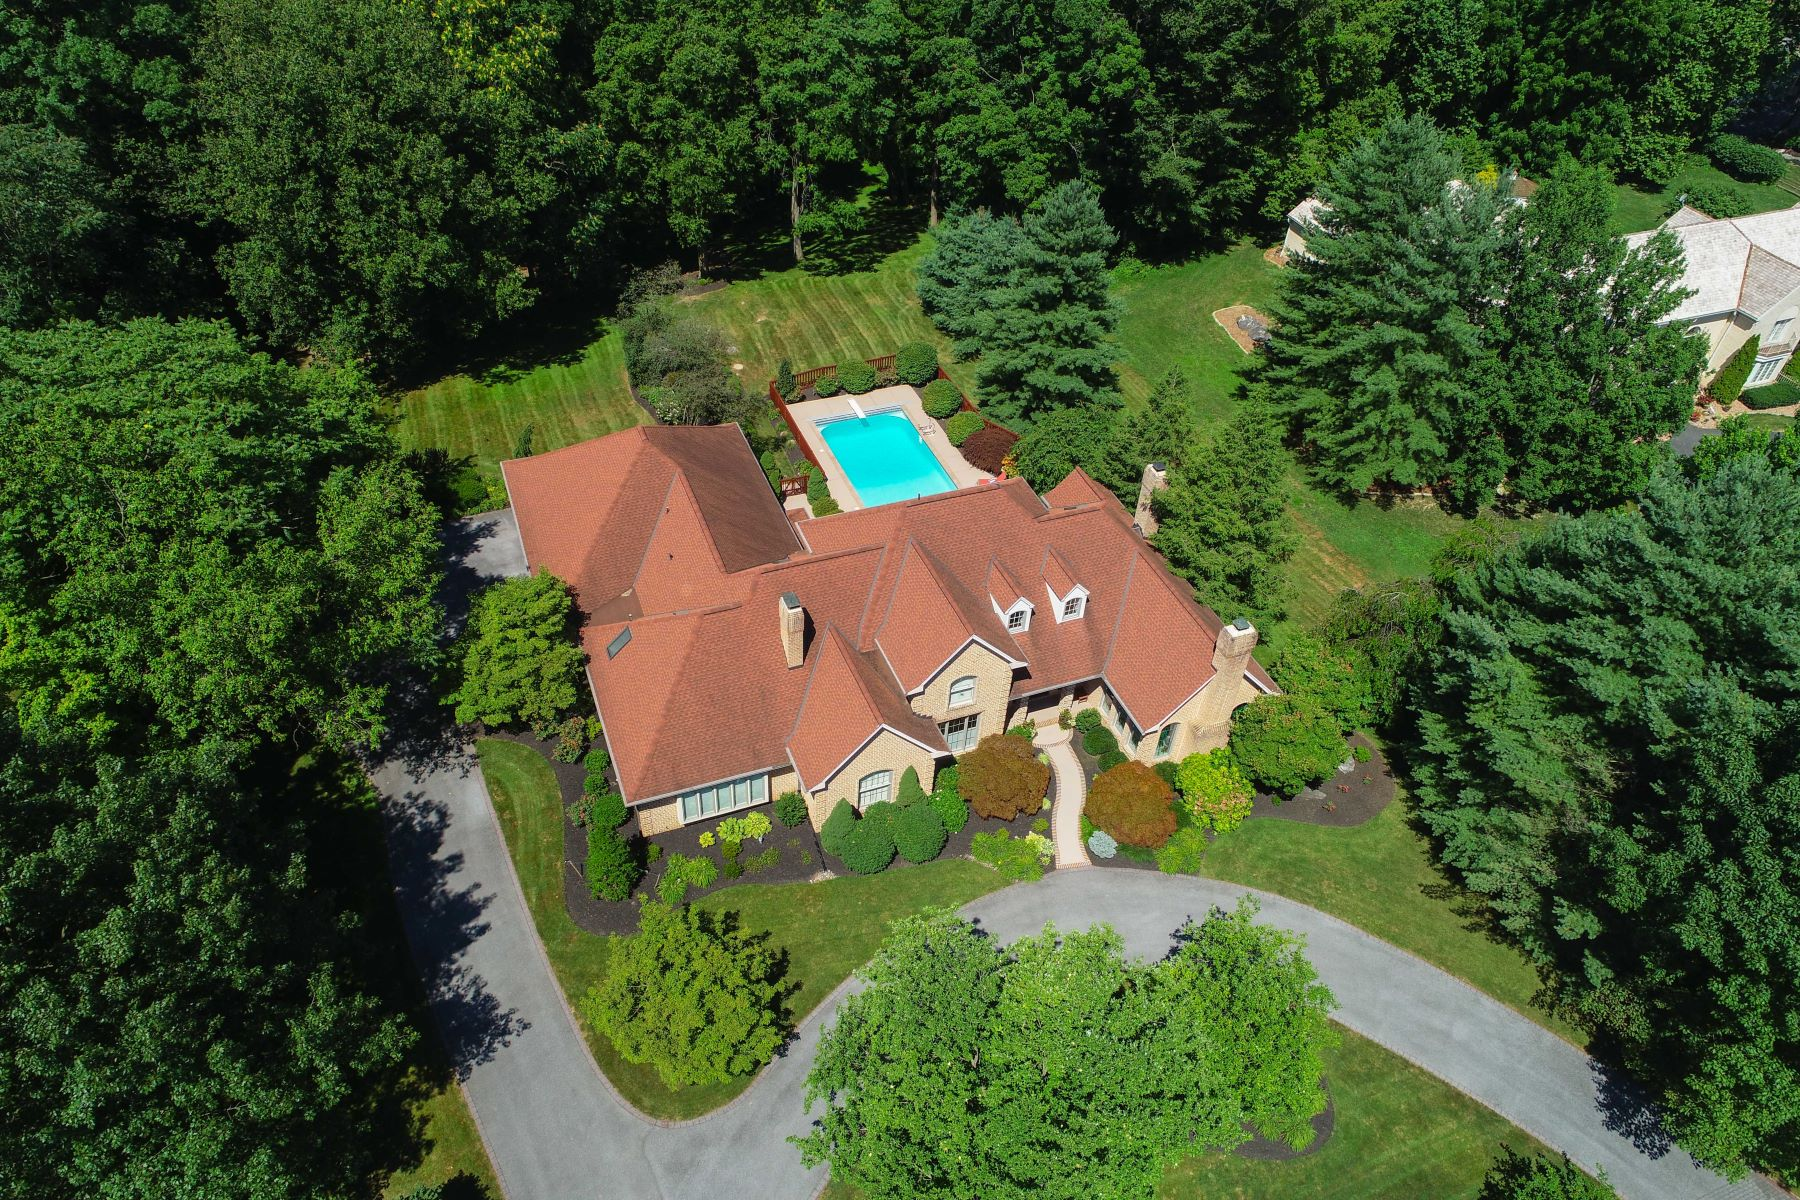 Casa Unifamiliar por un Venta en 5 Waterfront Estates Drive 5 Waterfront Estates Drive Lancaster, Pennsylvania 17602 Estados Unidos